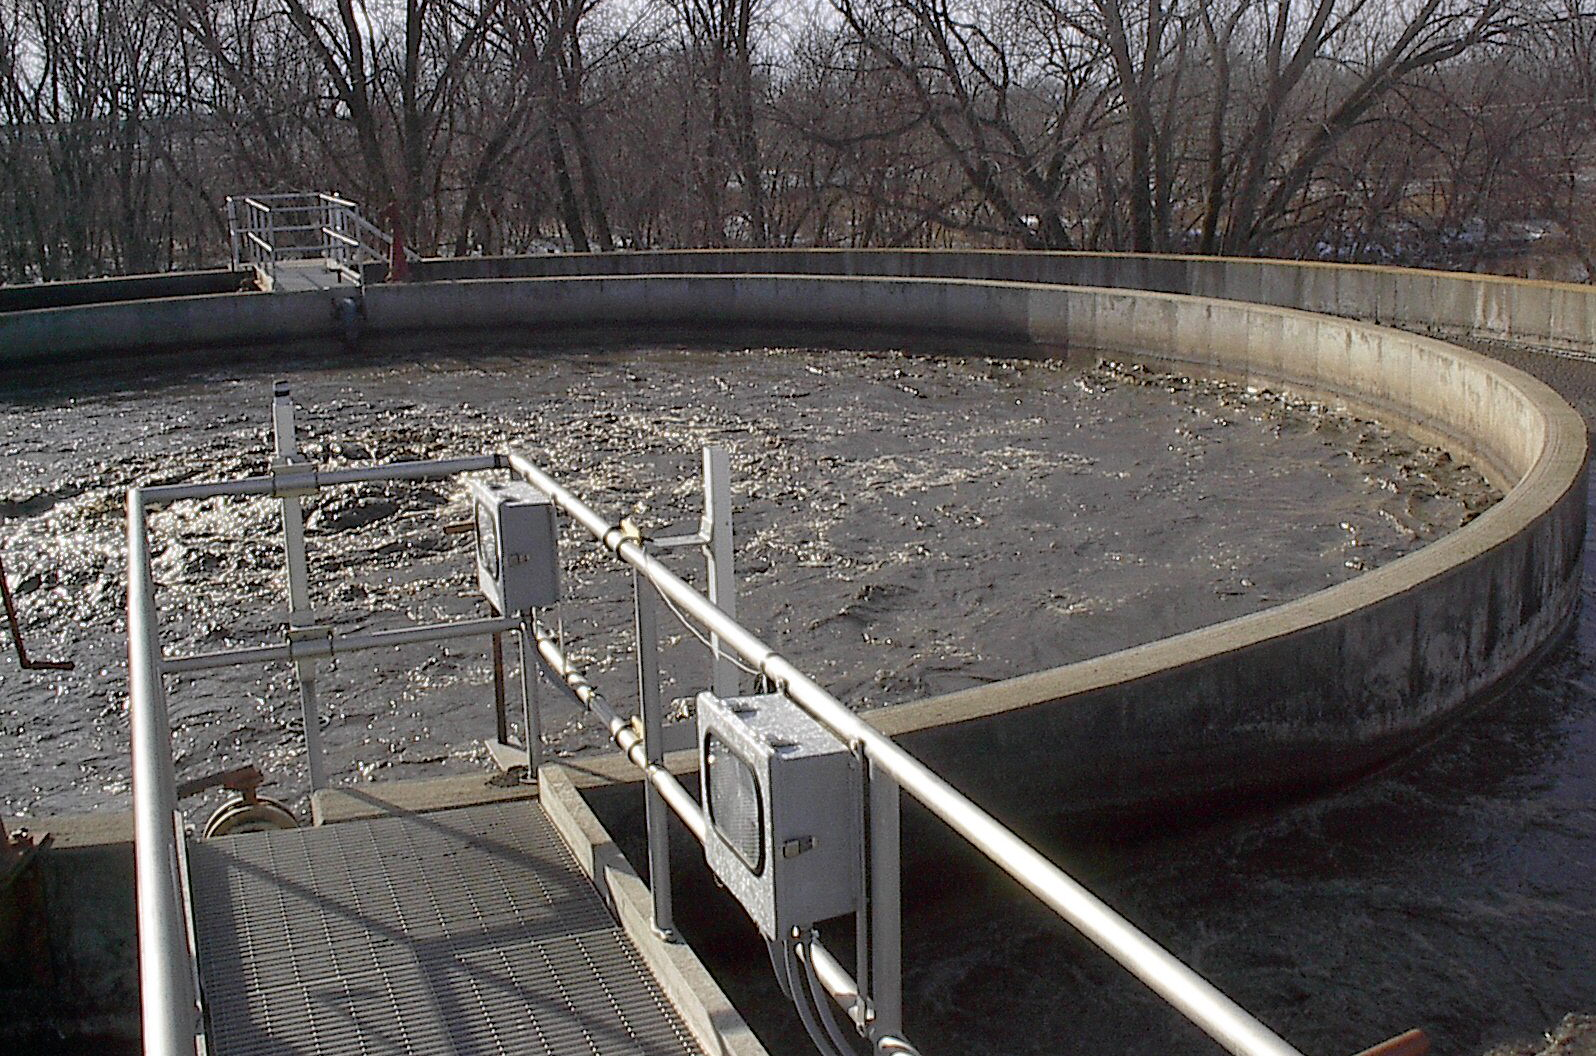 Why are wastewater treatment plants so important